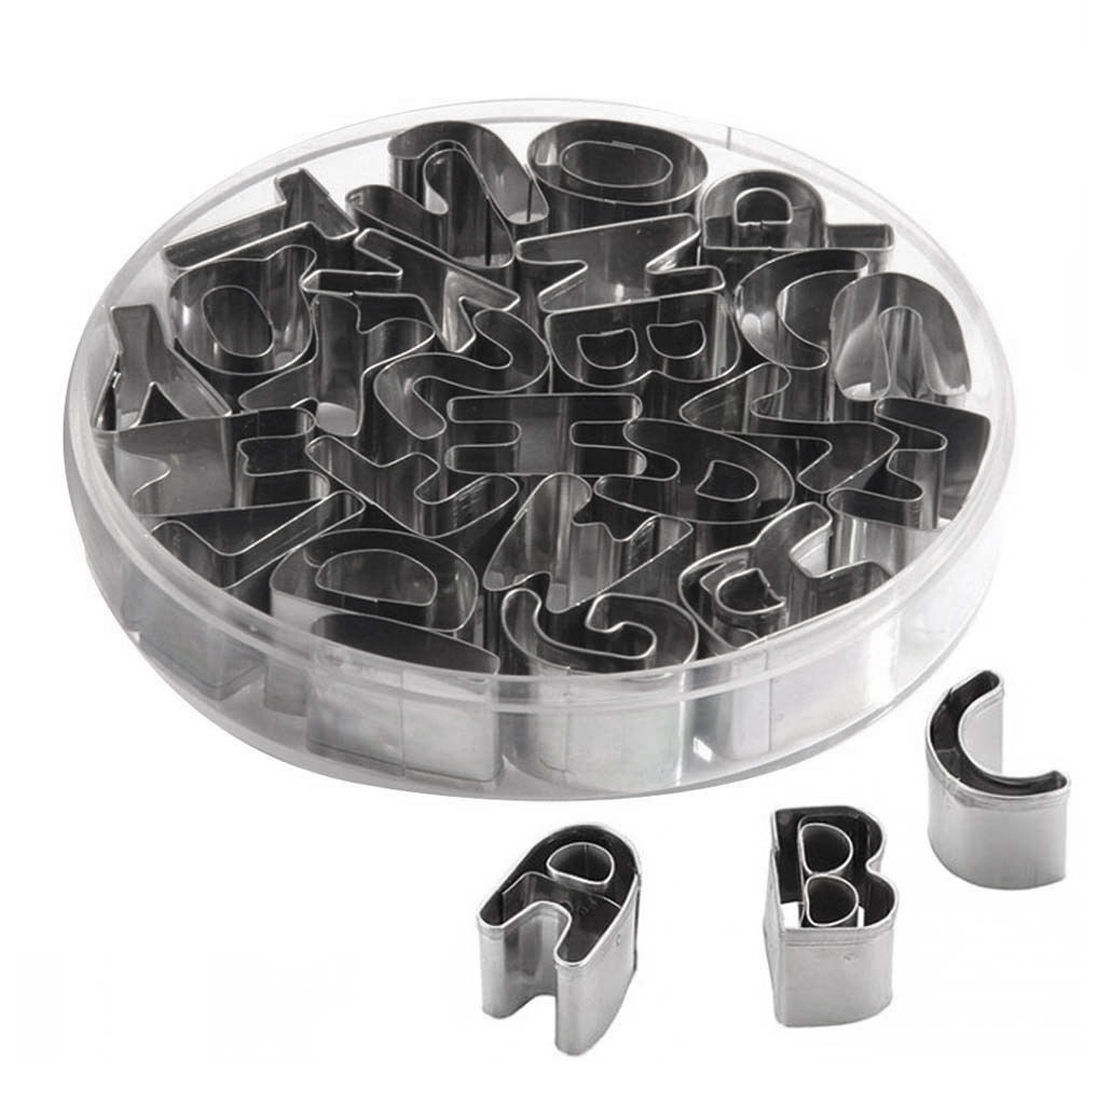 Stainless Steel English Alphabet Letters Cookies Cutters Molds Moulds 26 in 1